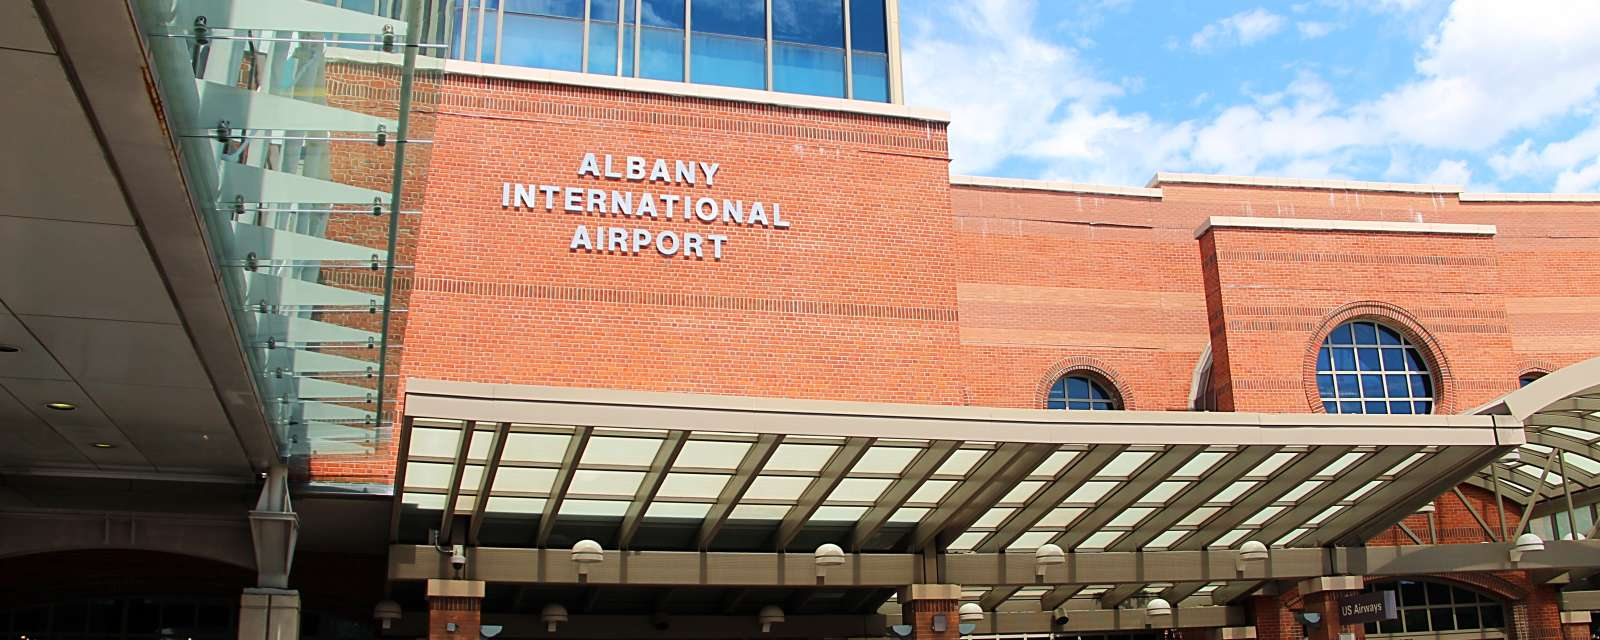 Albany International Airport